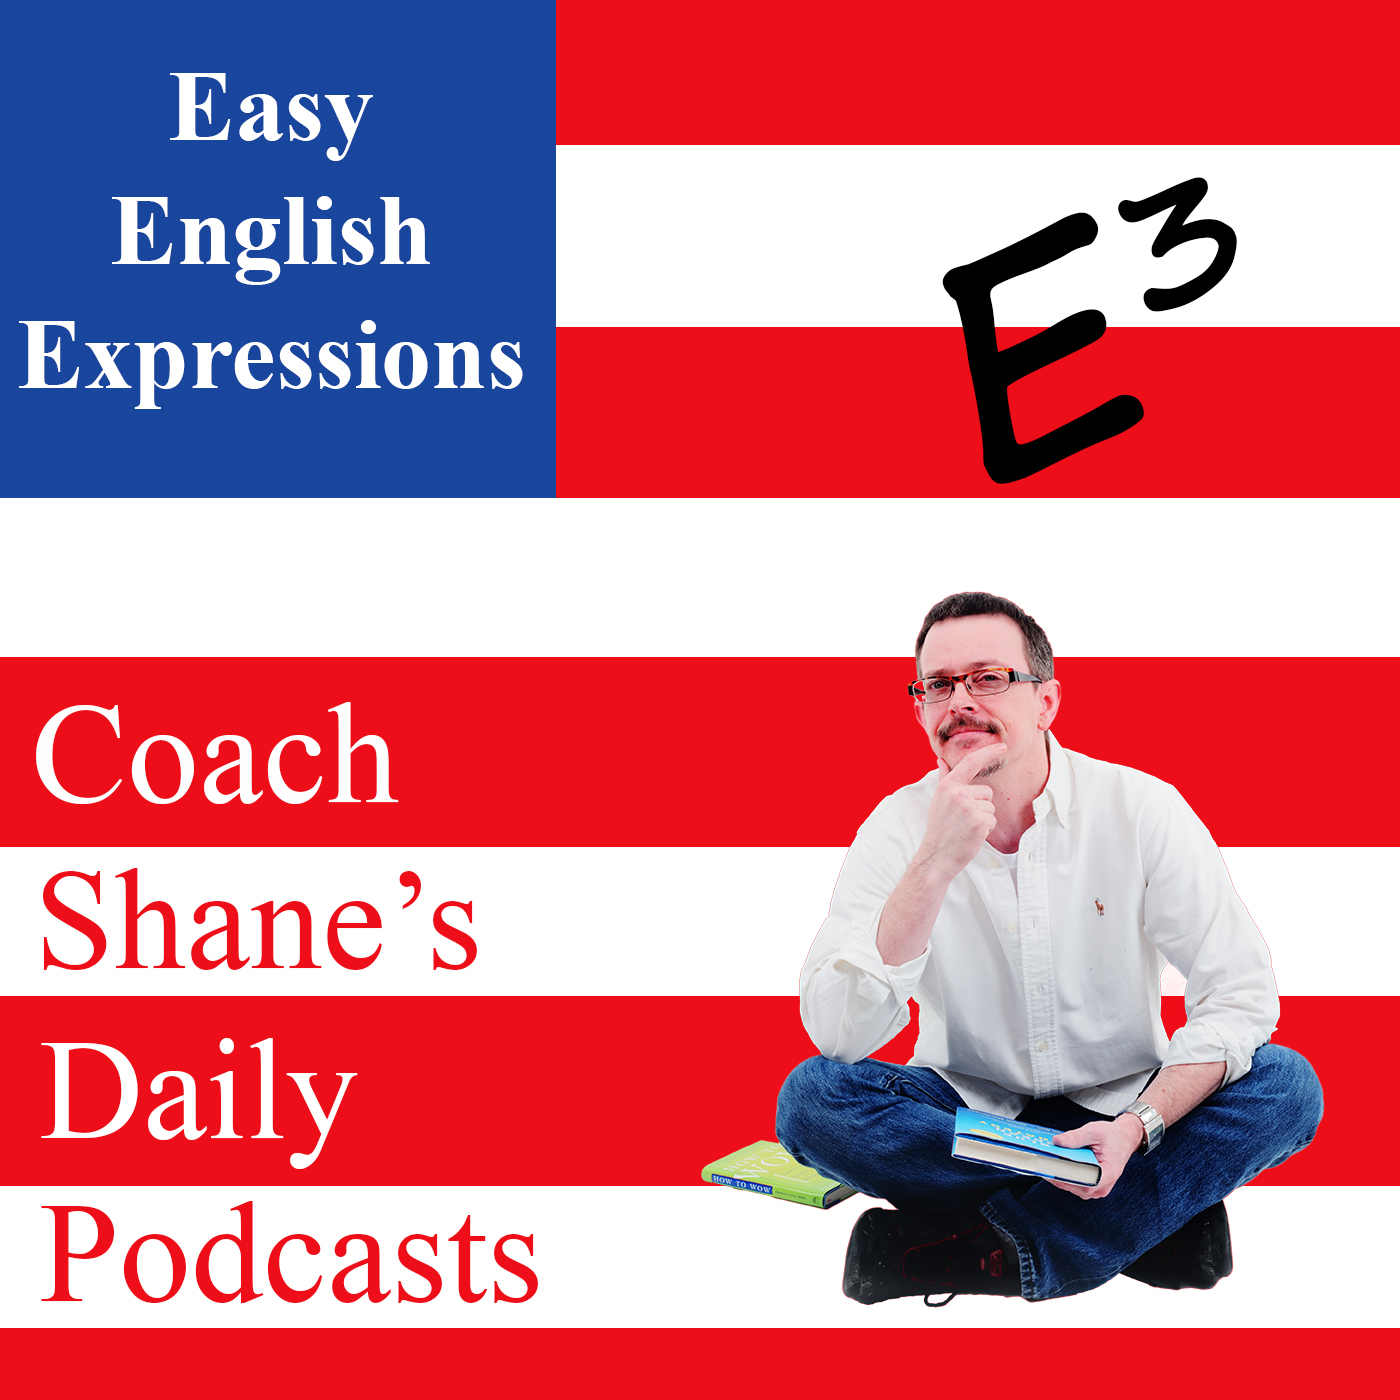 Daily Easy English Expression Podcast logo